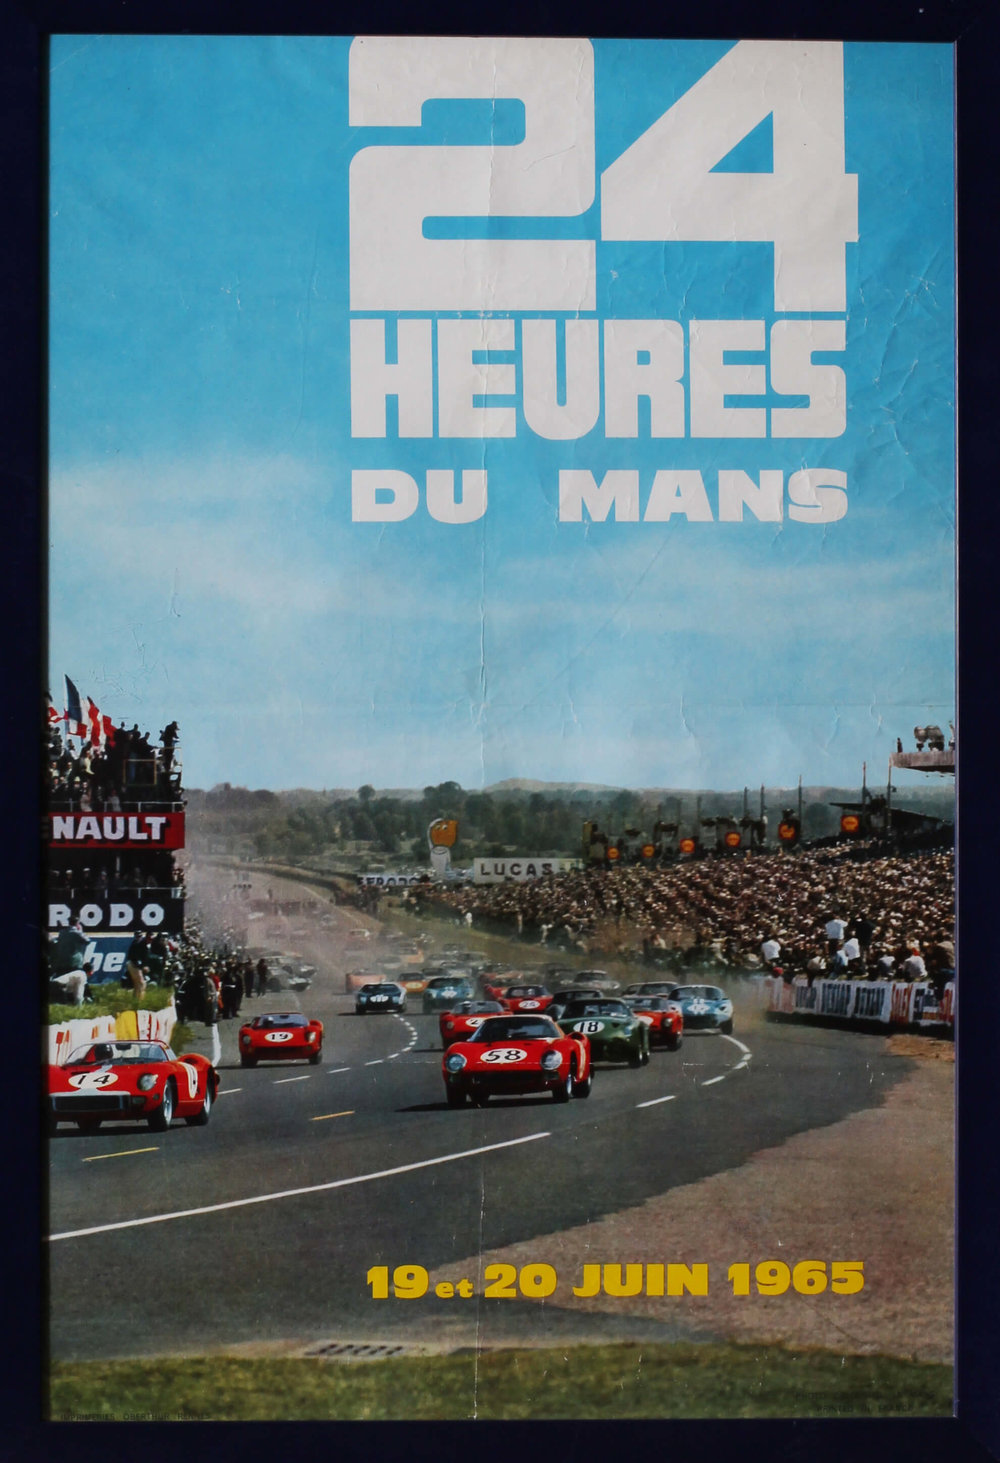 1965 LE MANS POSTER    24 HEURES DE MANS, 19 & 20 JUIN 1965  SIMPLY FRAMED BEHIND PERSPEX  64 X 44CM.  CONDITION: THERE ARE FOLDS, CREASES AND SCUFFS   PRICE: £500